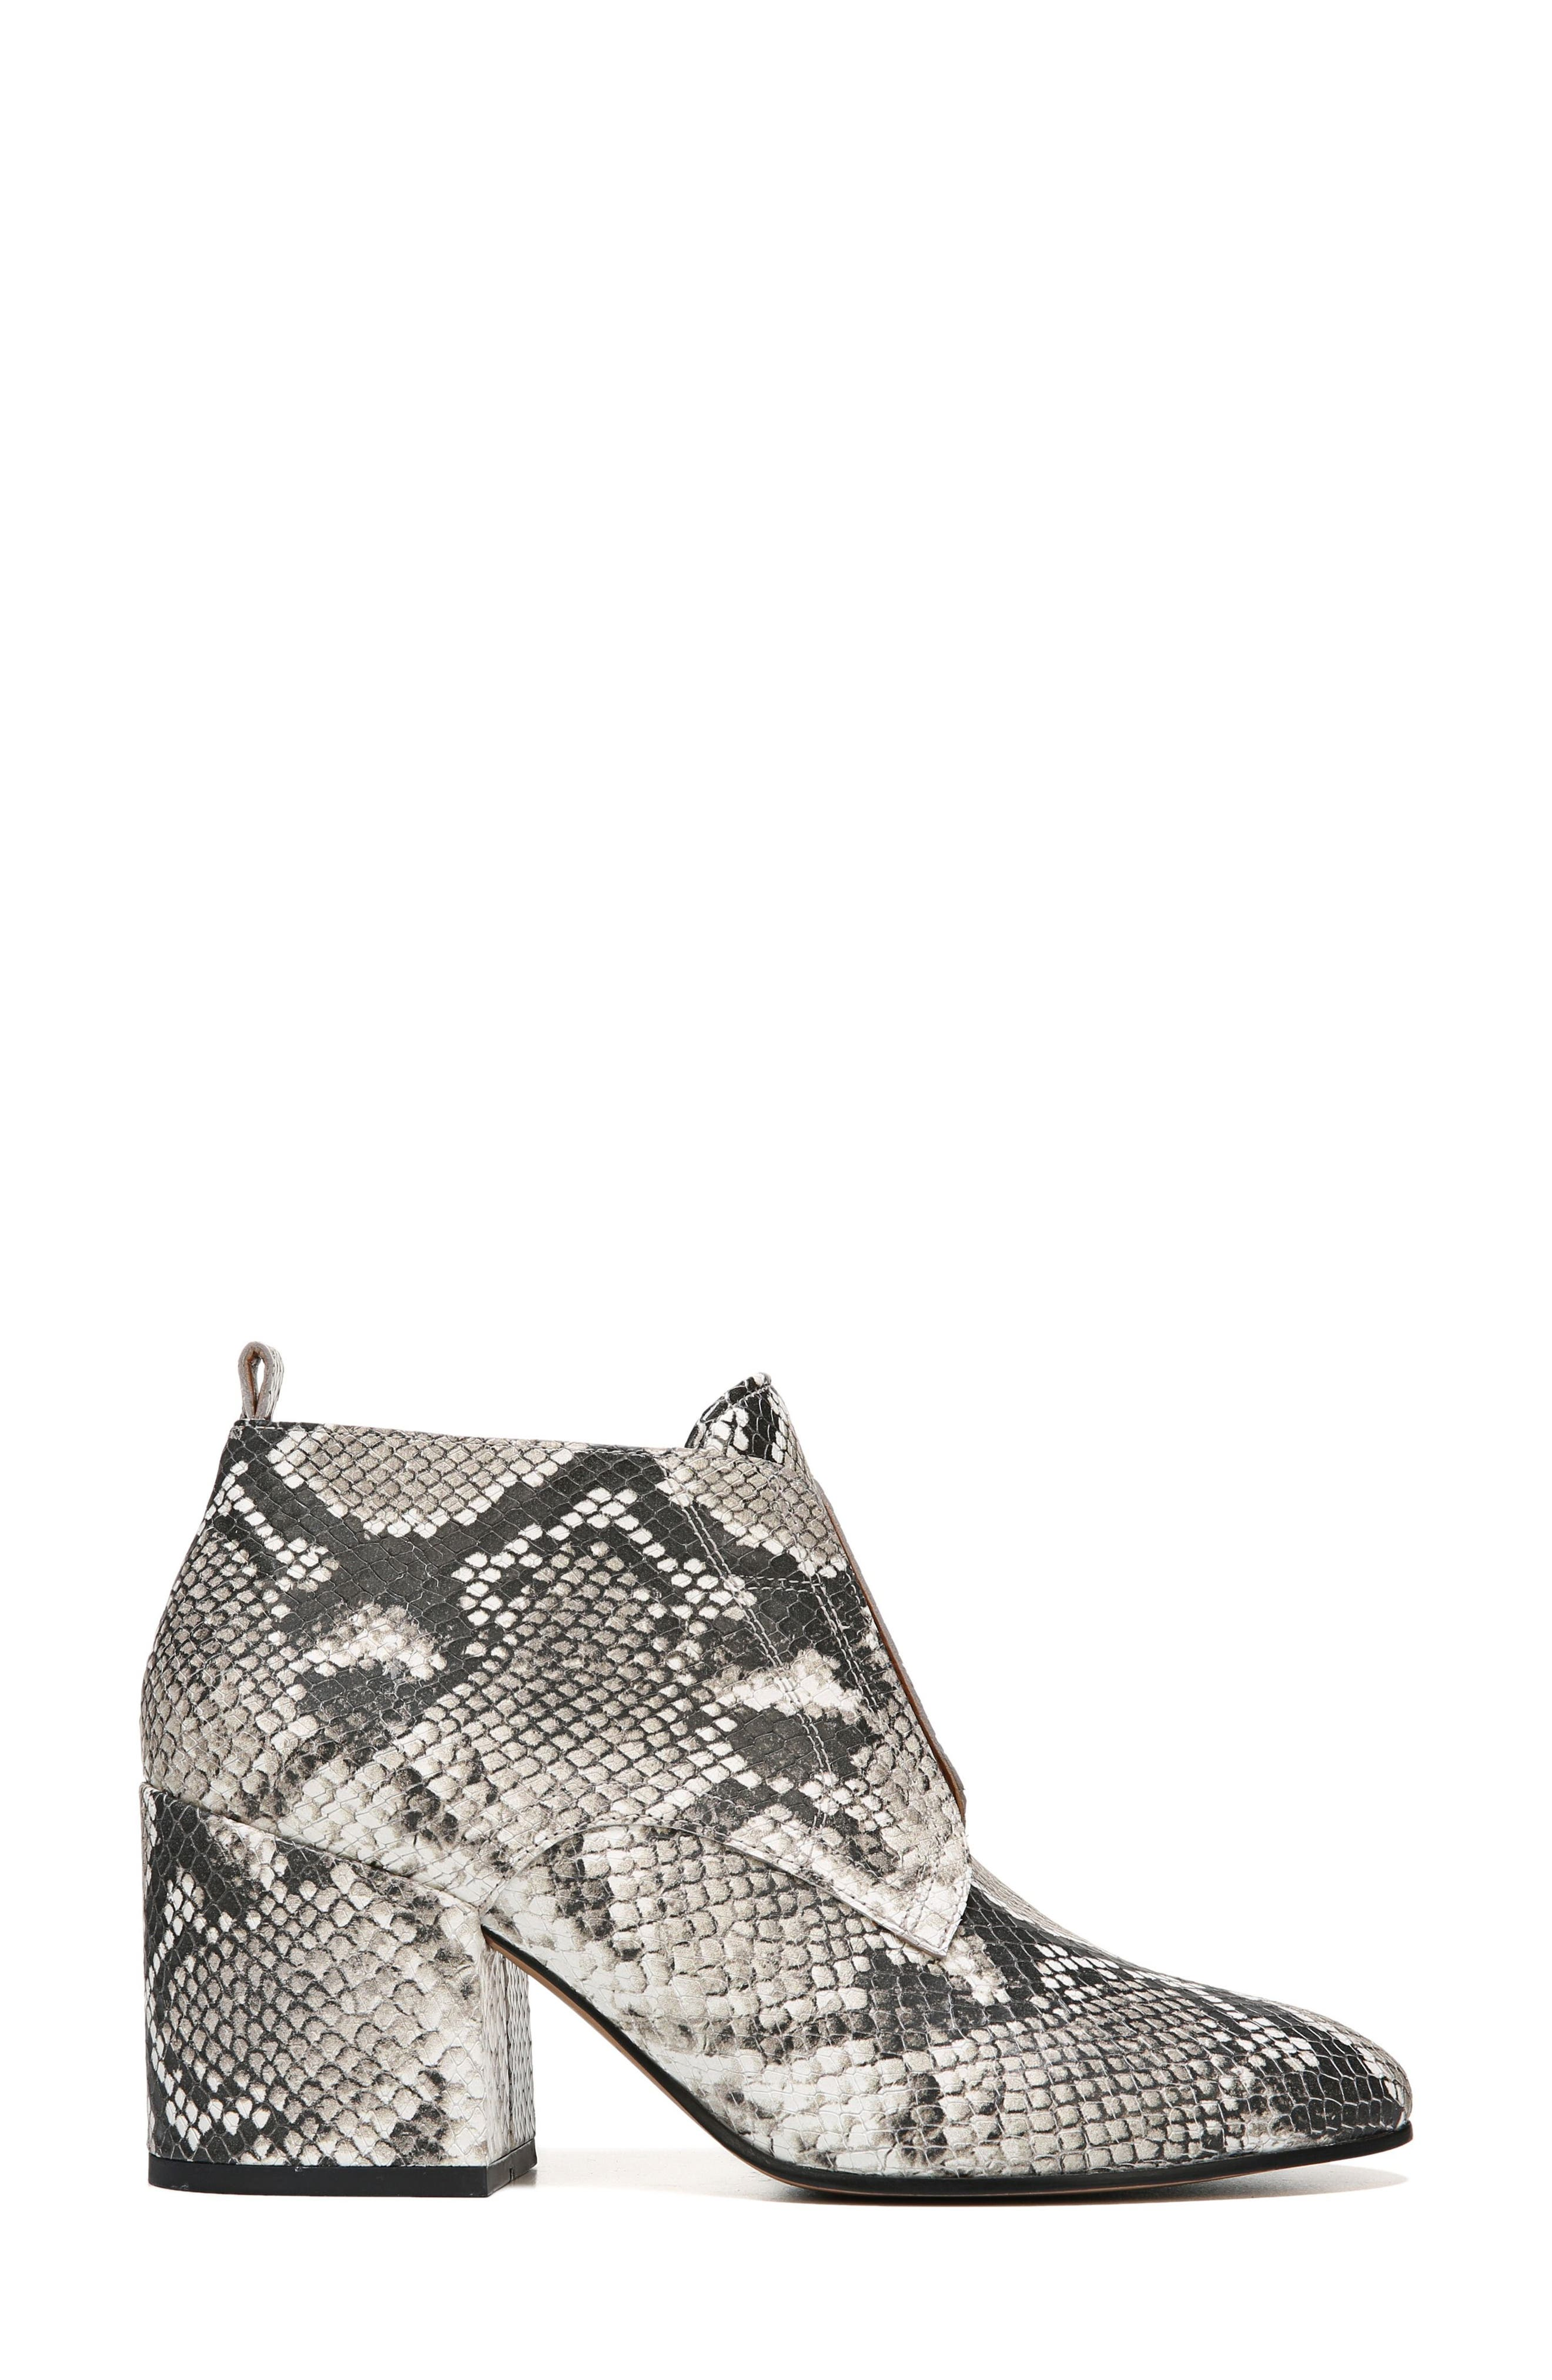 Alfie Bootie,                             Alternate thumbnail 3, color,                             Natural Snake Leather